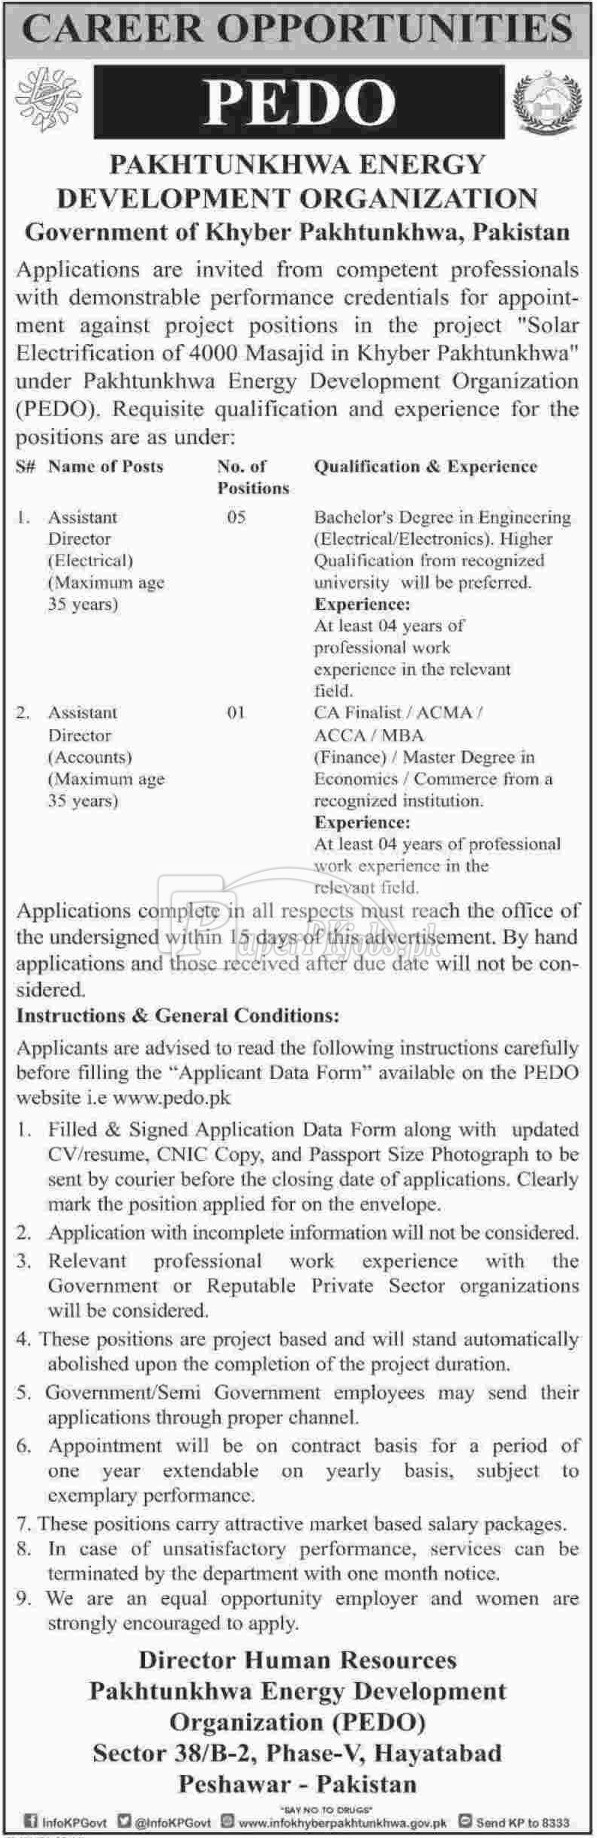 Pakhtunkhwa Energy Development Organization PEDO Jobs 2017